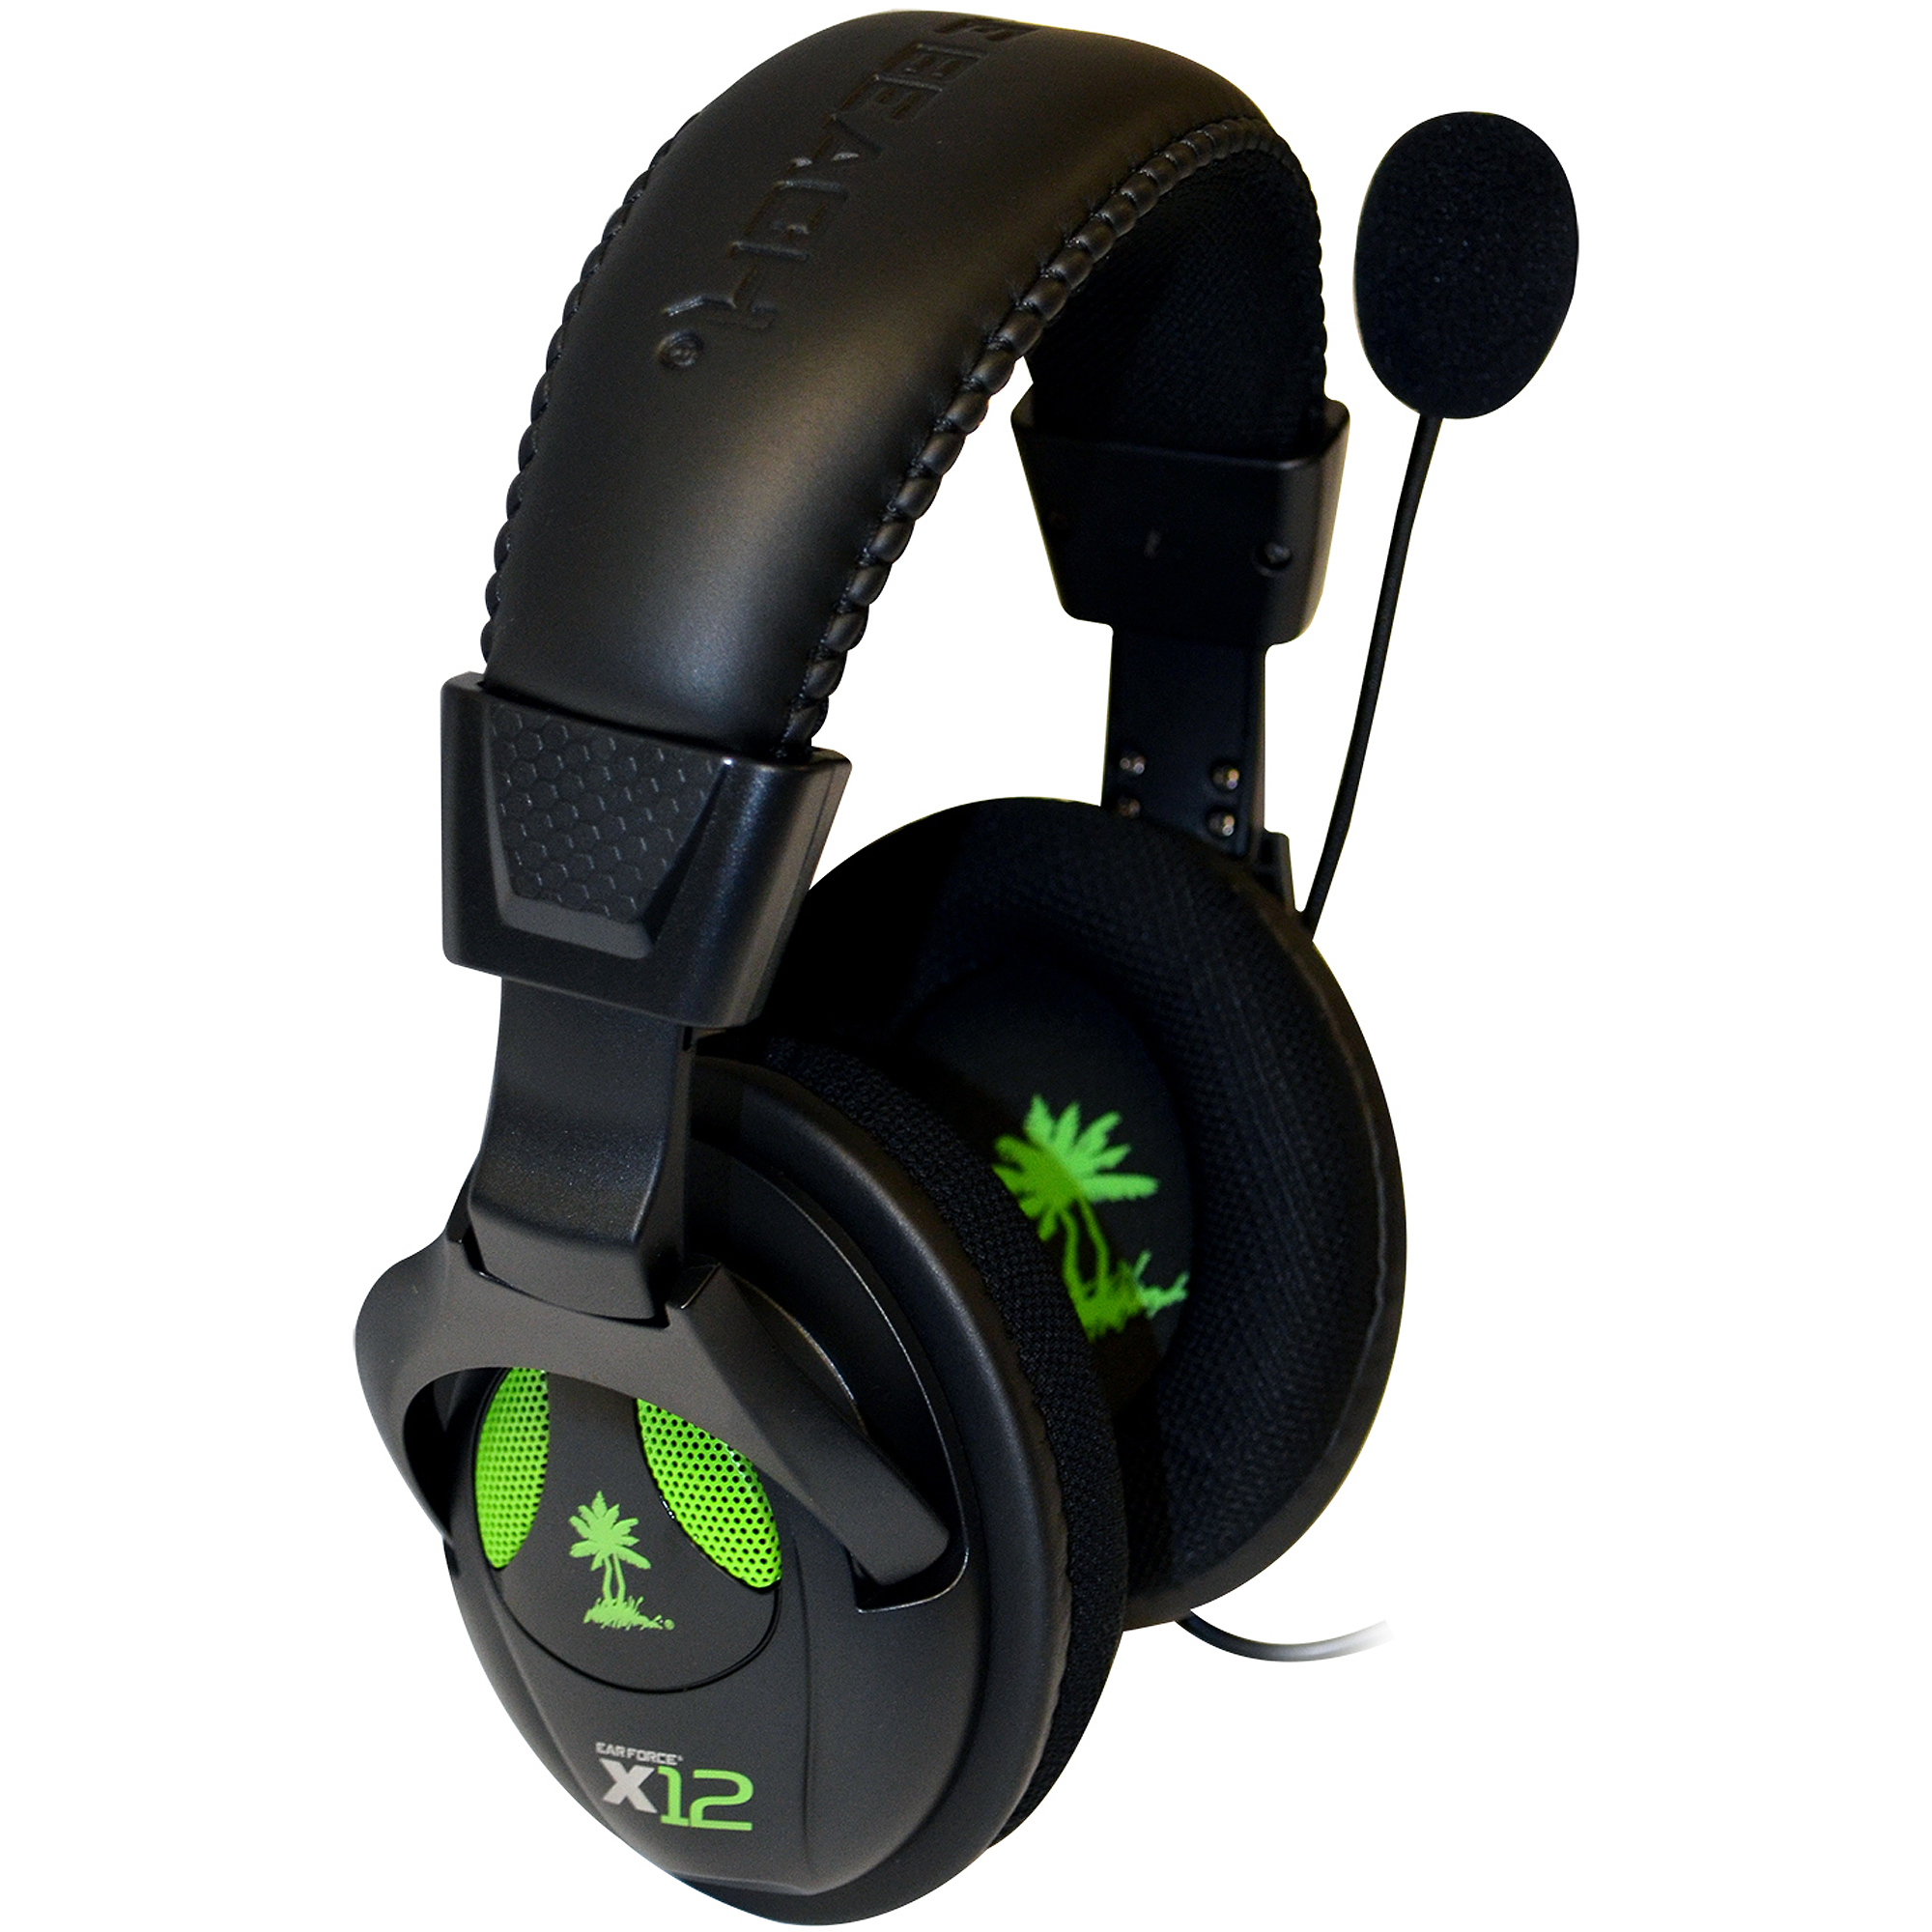 Ear force x12 xbox 360 setup